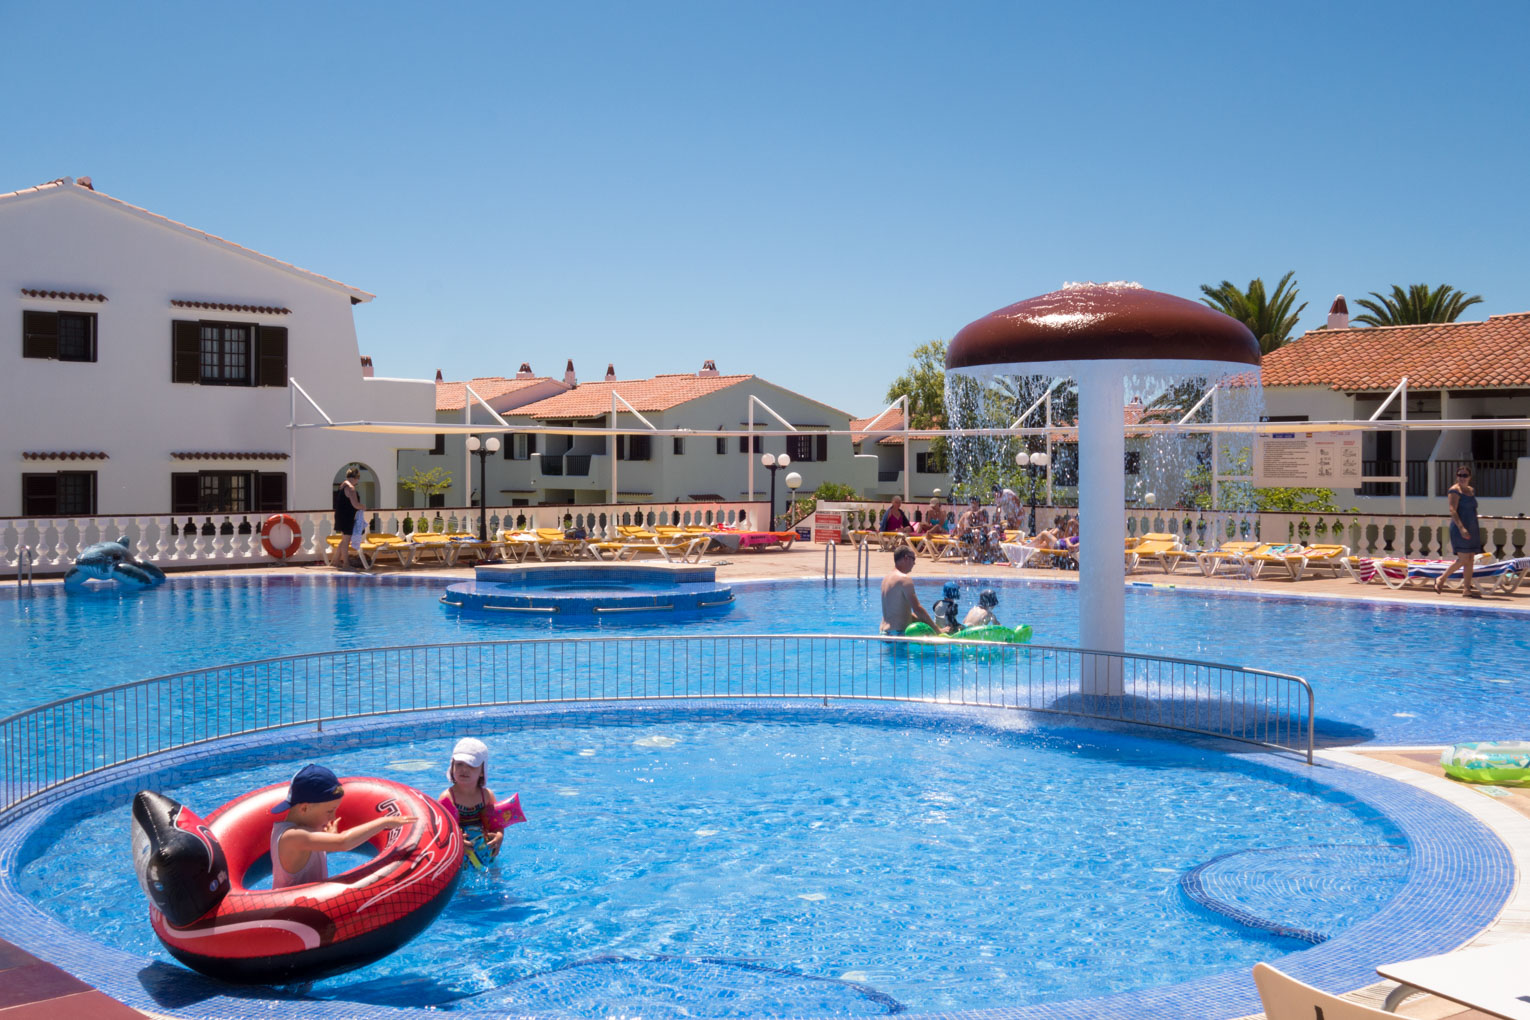 Son Bou Playa Apartments (2 bedroom) Picture 6